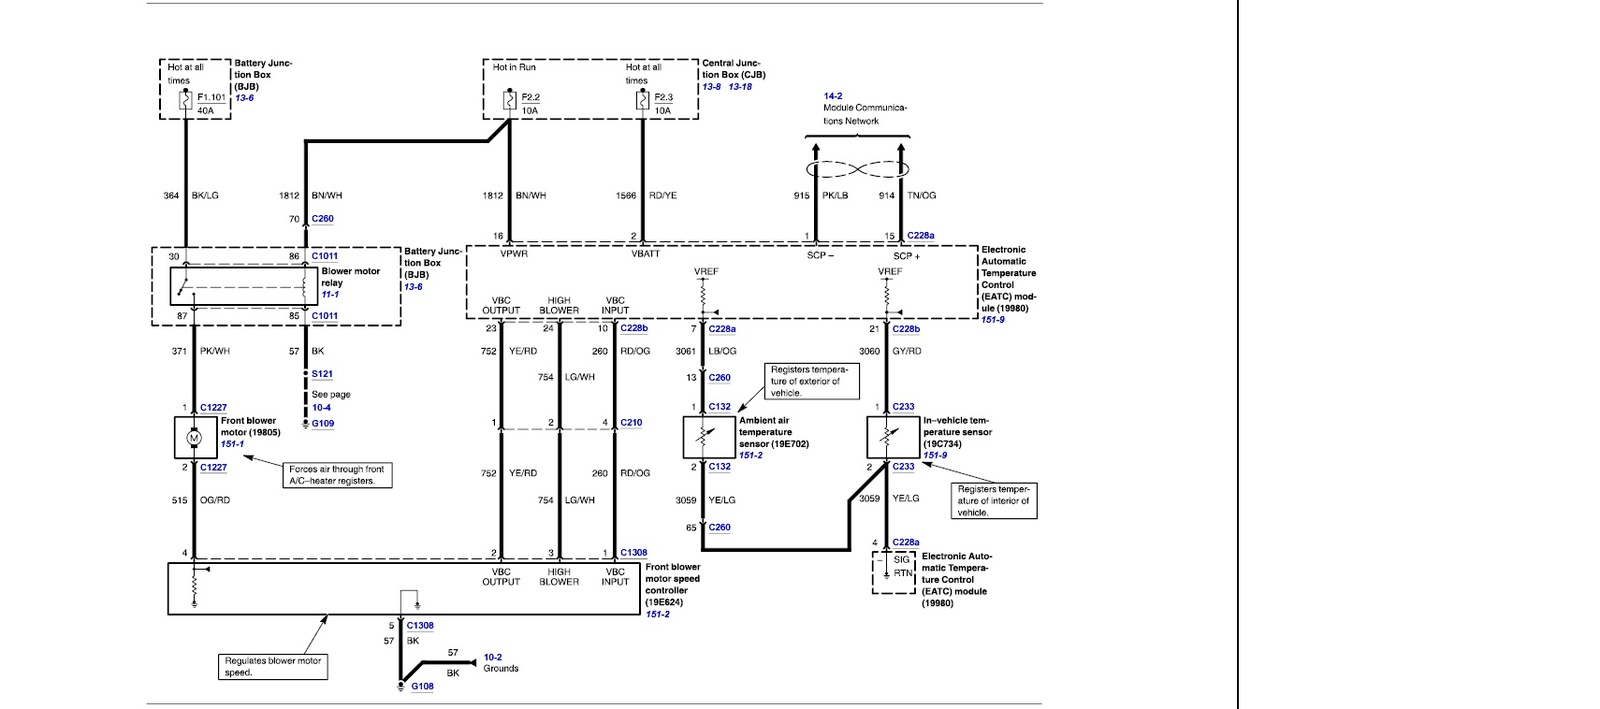 pic 8323870579460996013 1600x1200?resize=665%2C295&ssl=1 mobile climate control wiring diagram wiring diagram mobile climate control wiring diagram at crackthecode.co